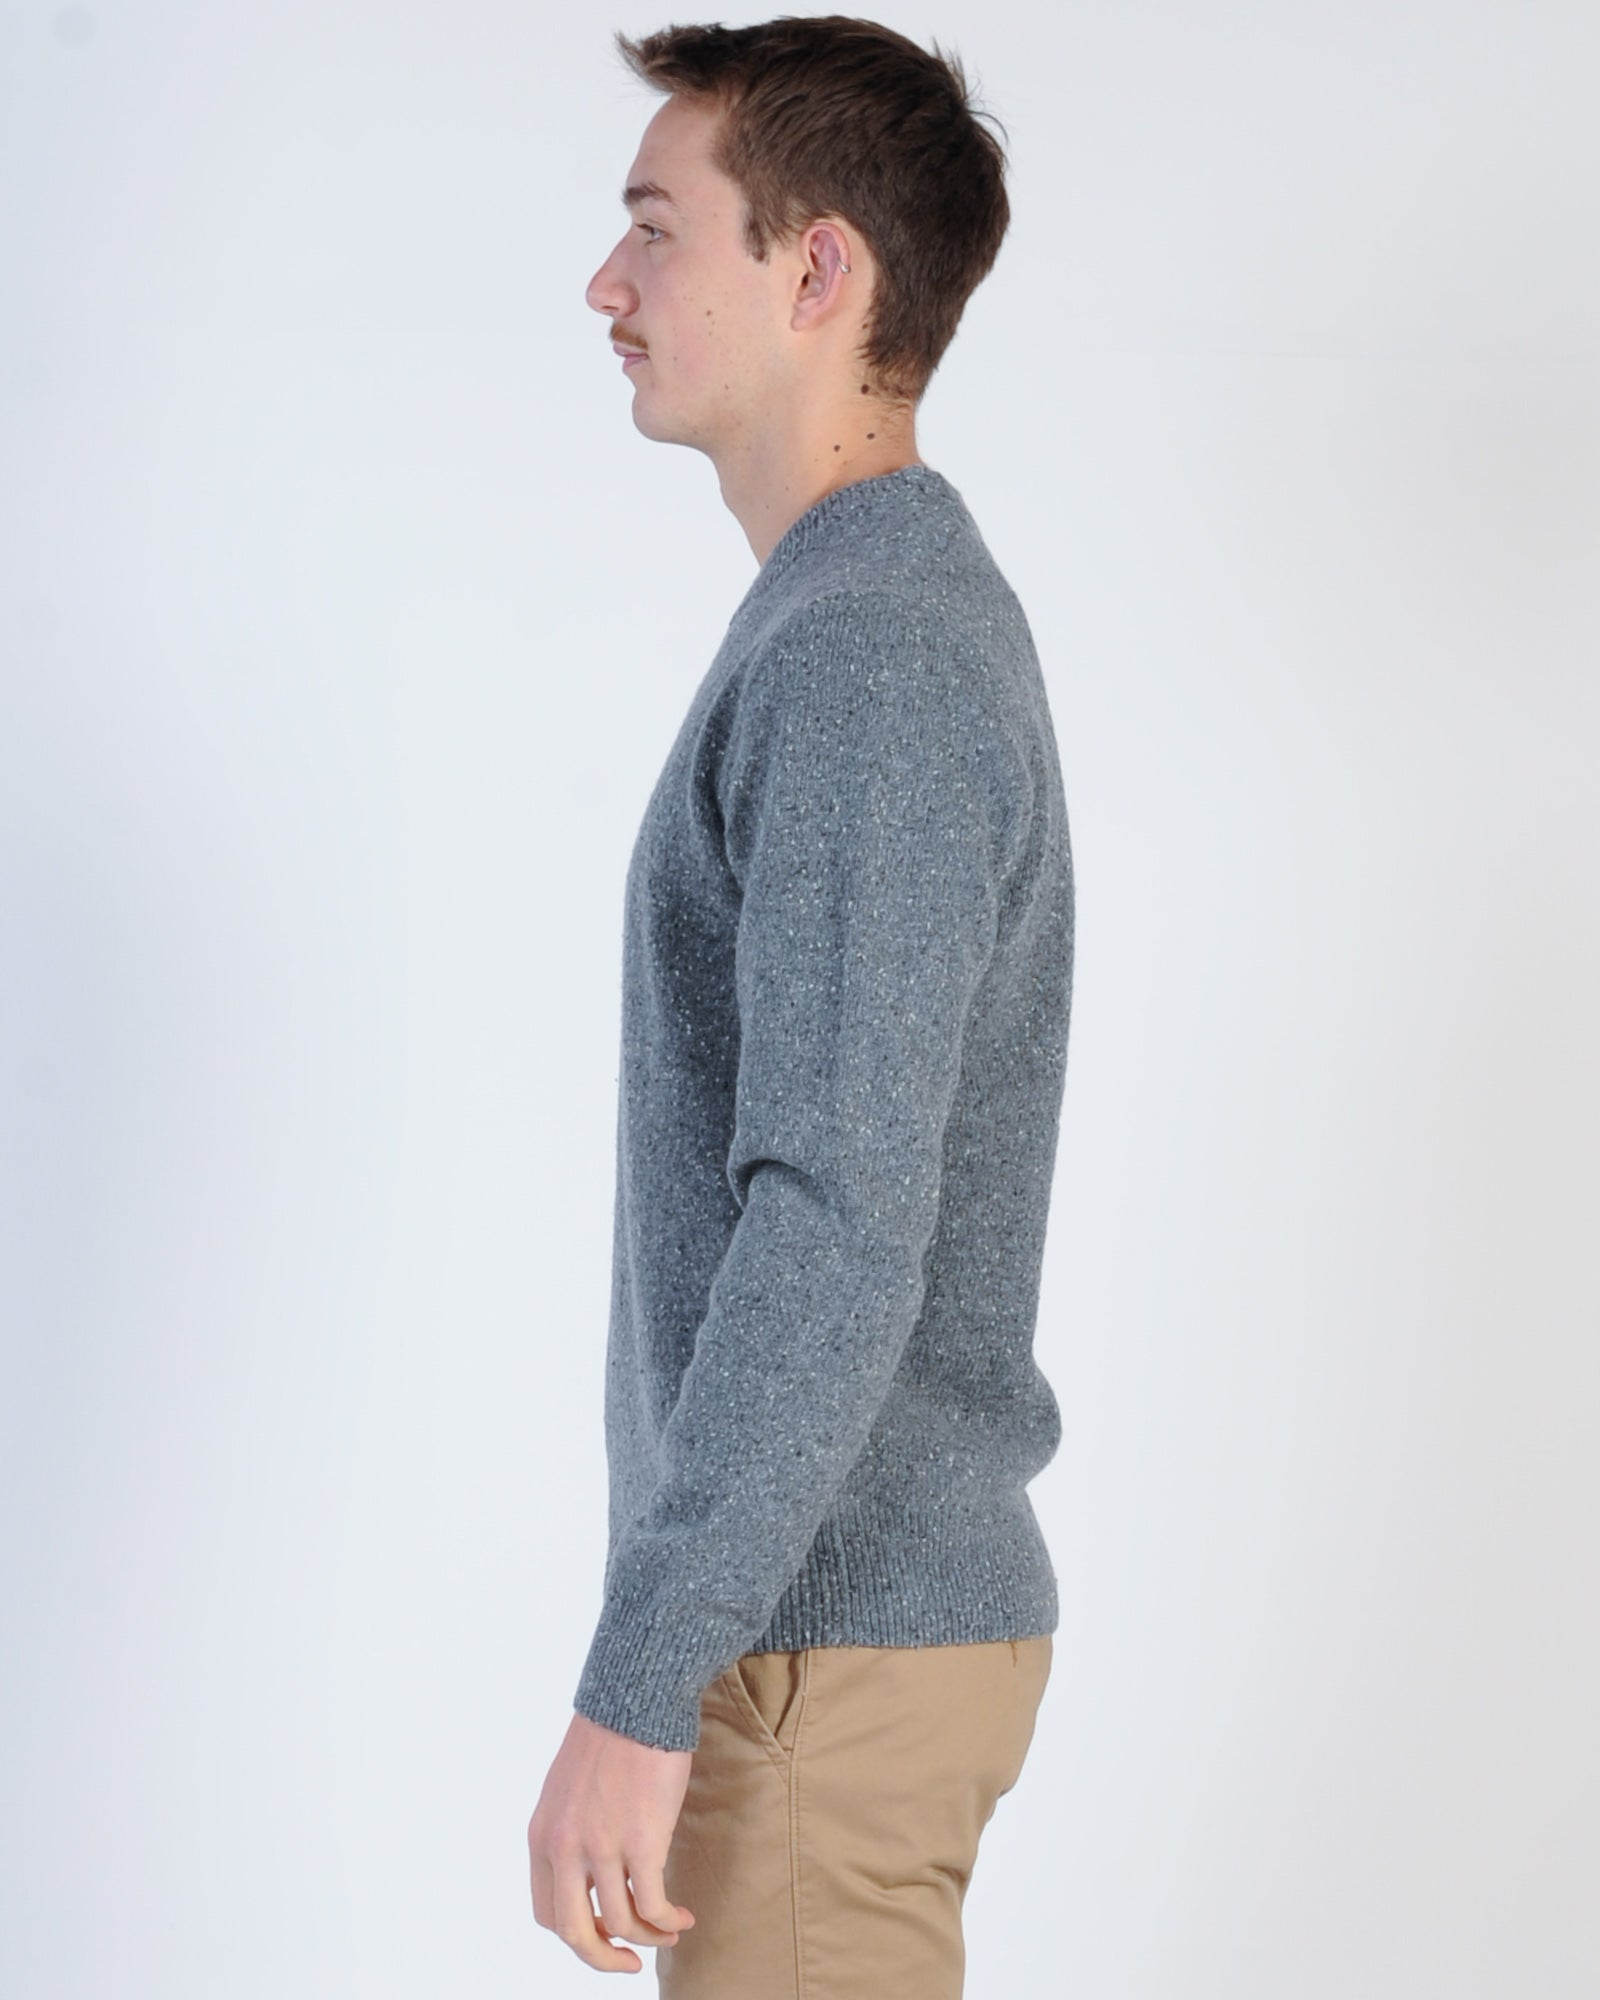 Academy Shoreditch Crew Knit Jumper - Quarry Fleck